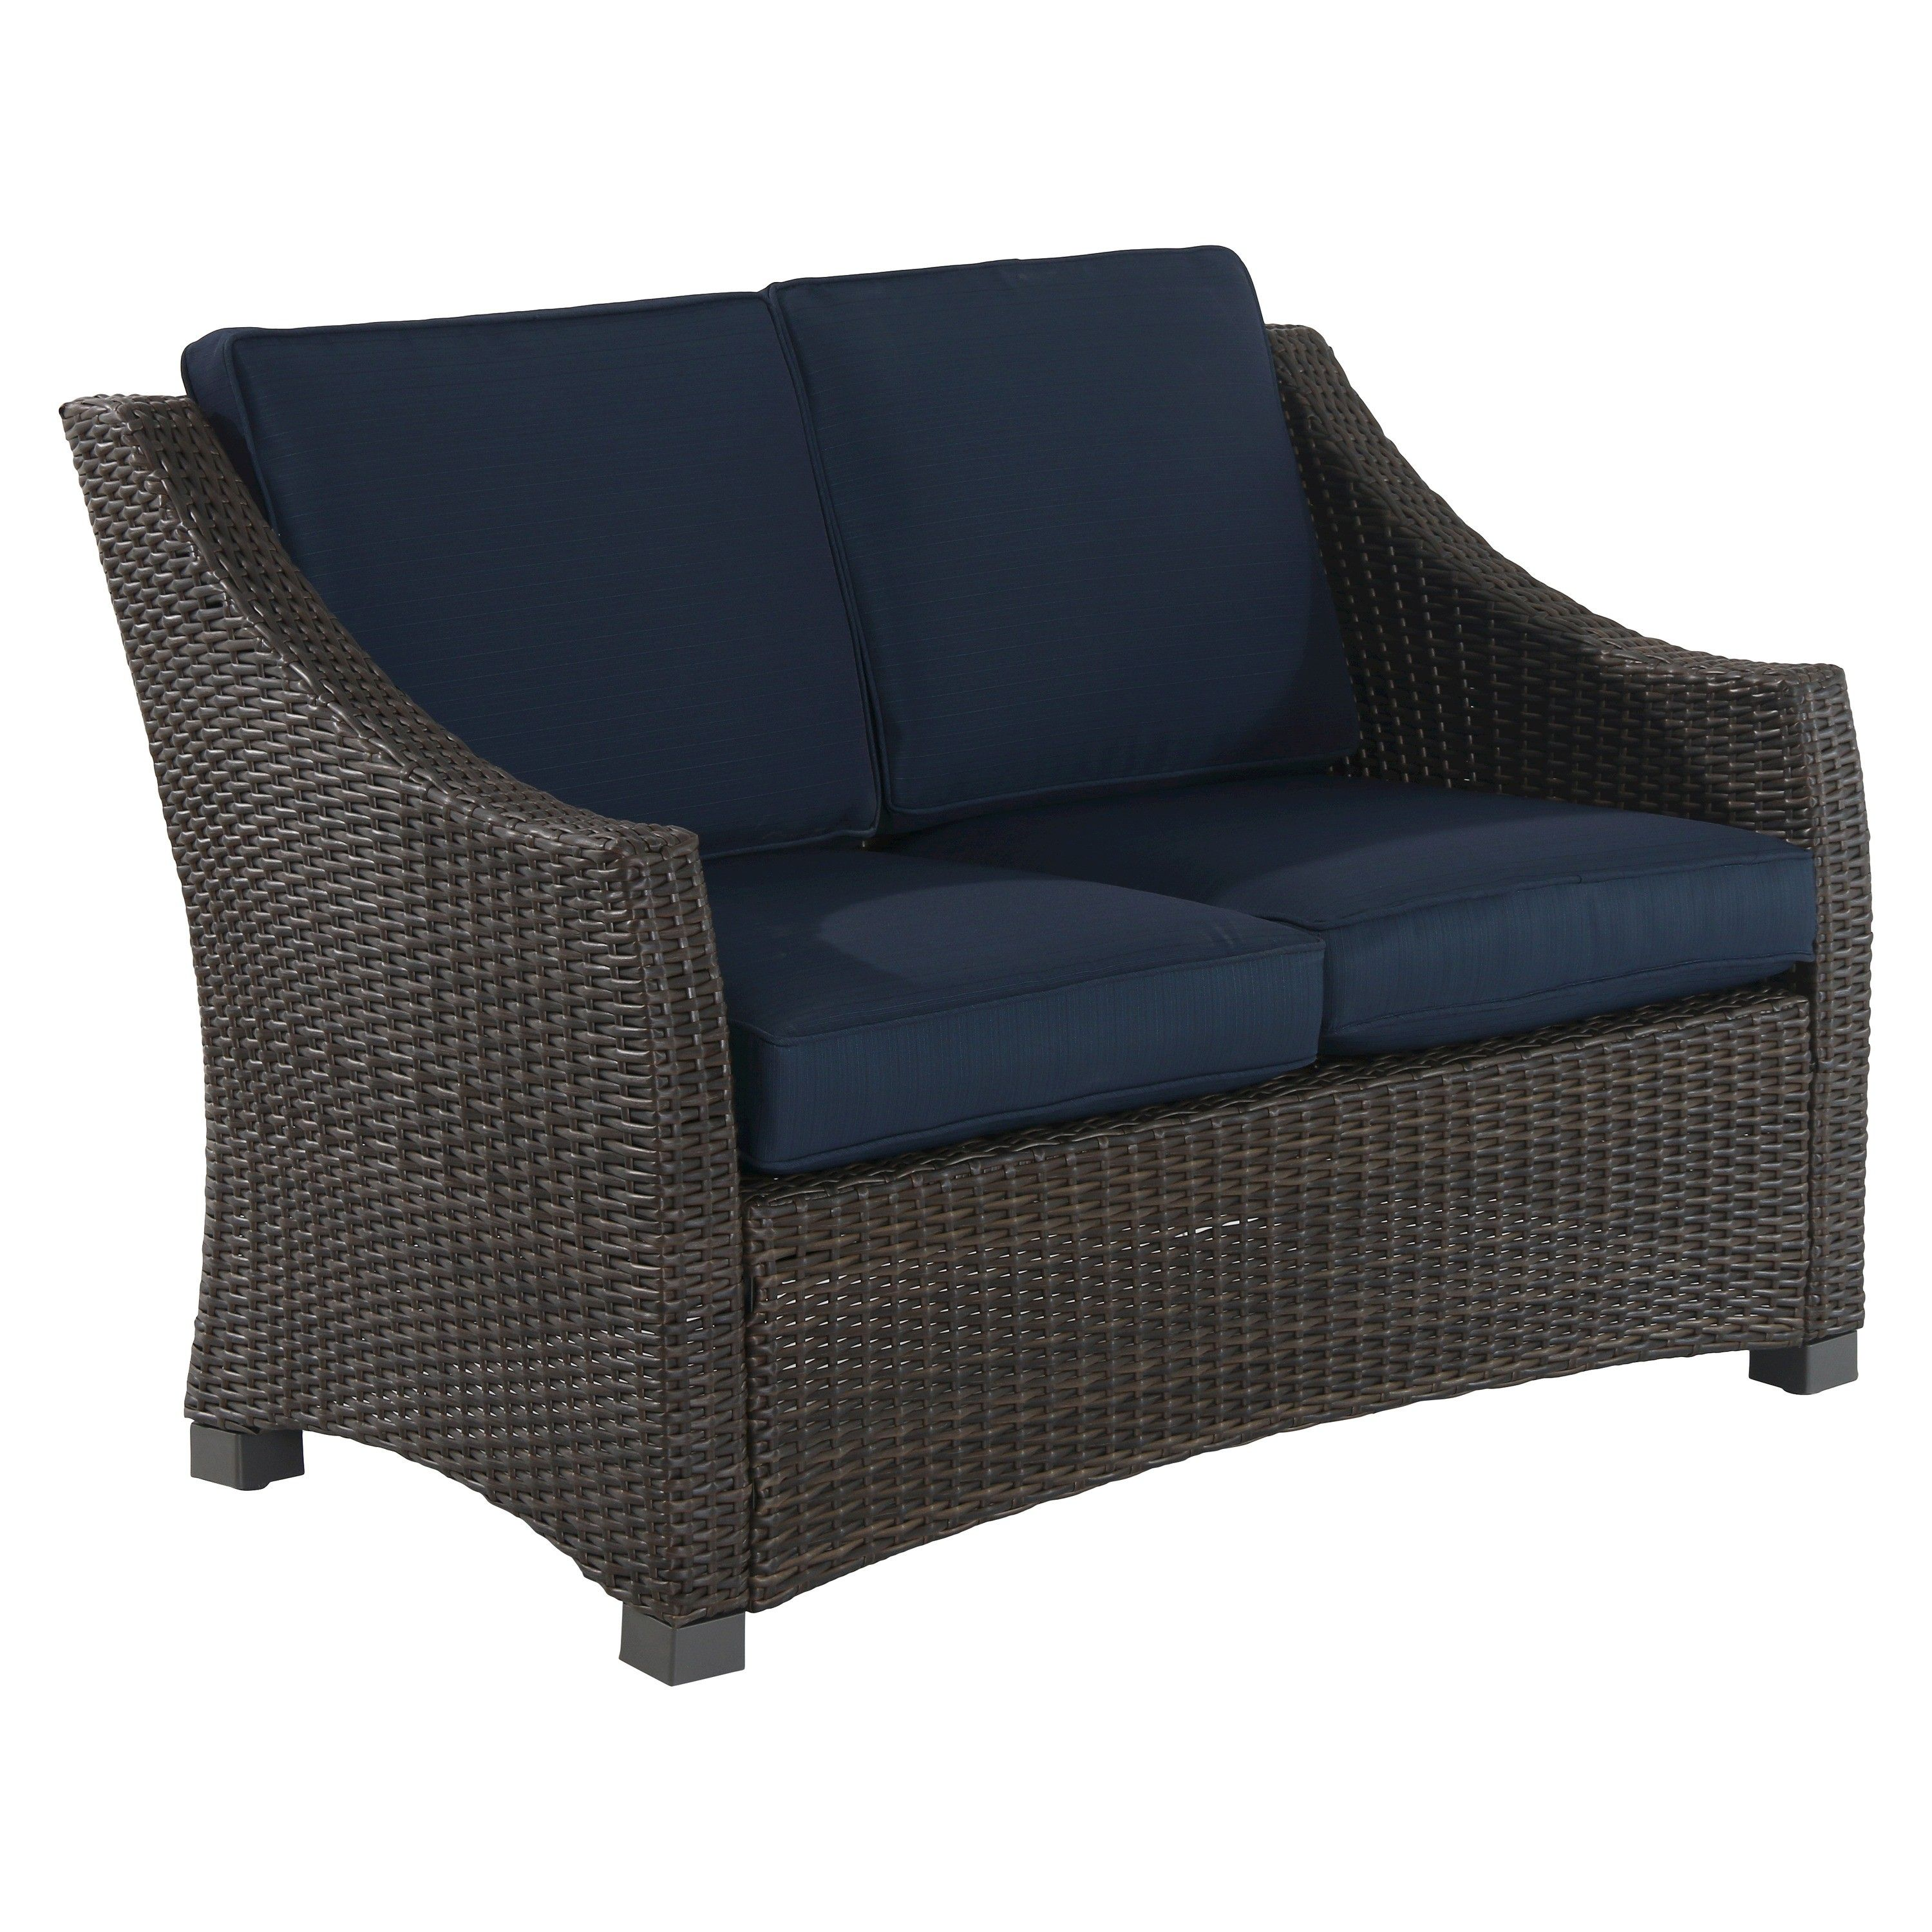 unique of resin loveseat wicker fresh elegant furniture patio chairs